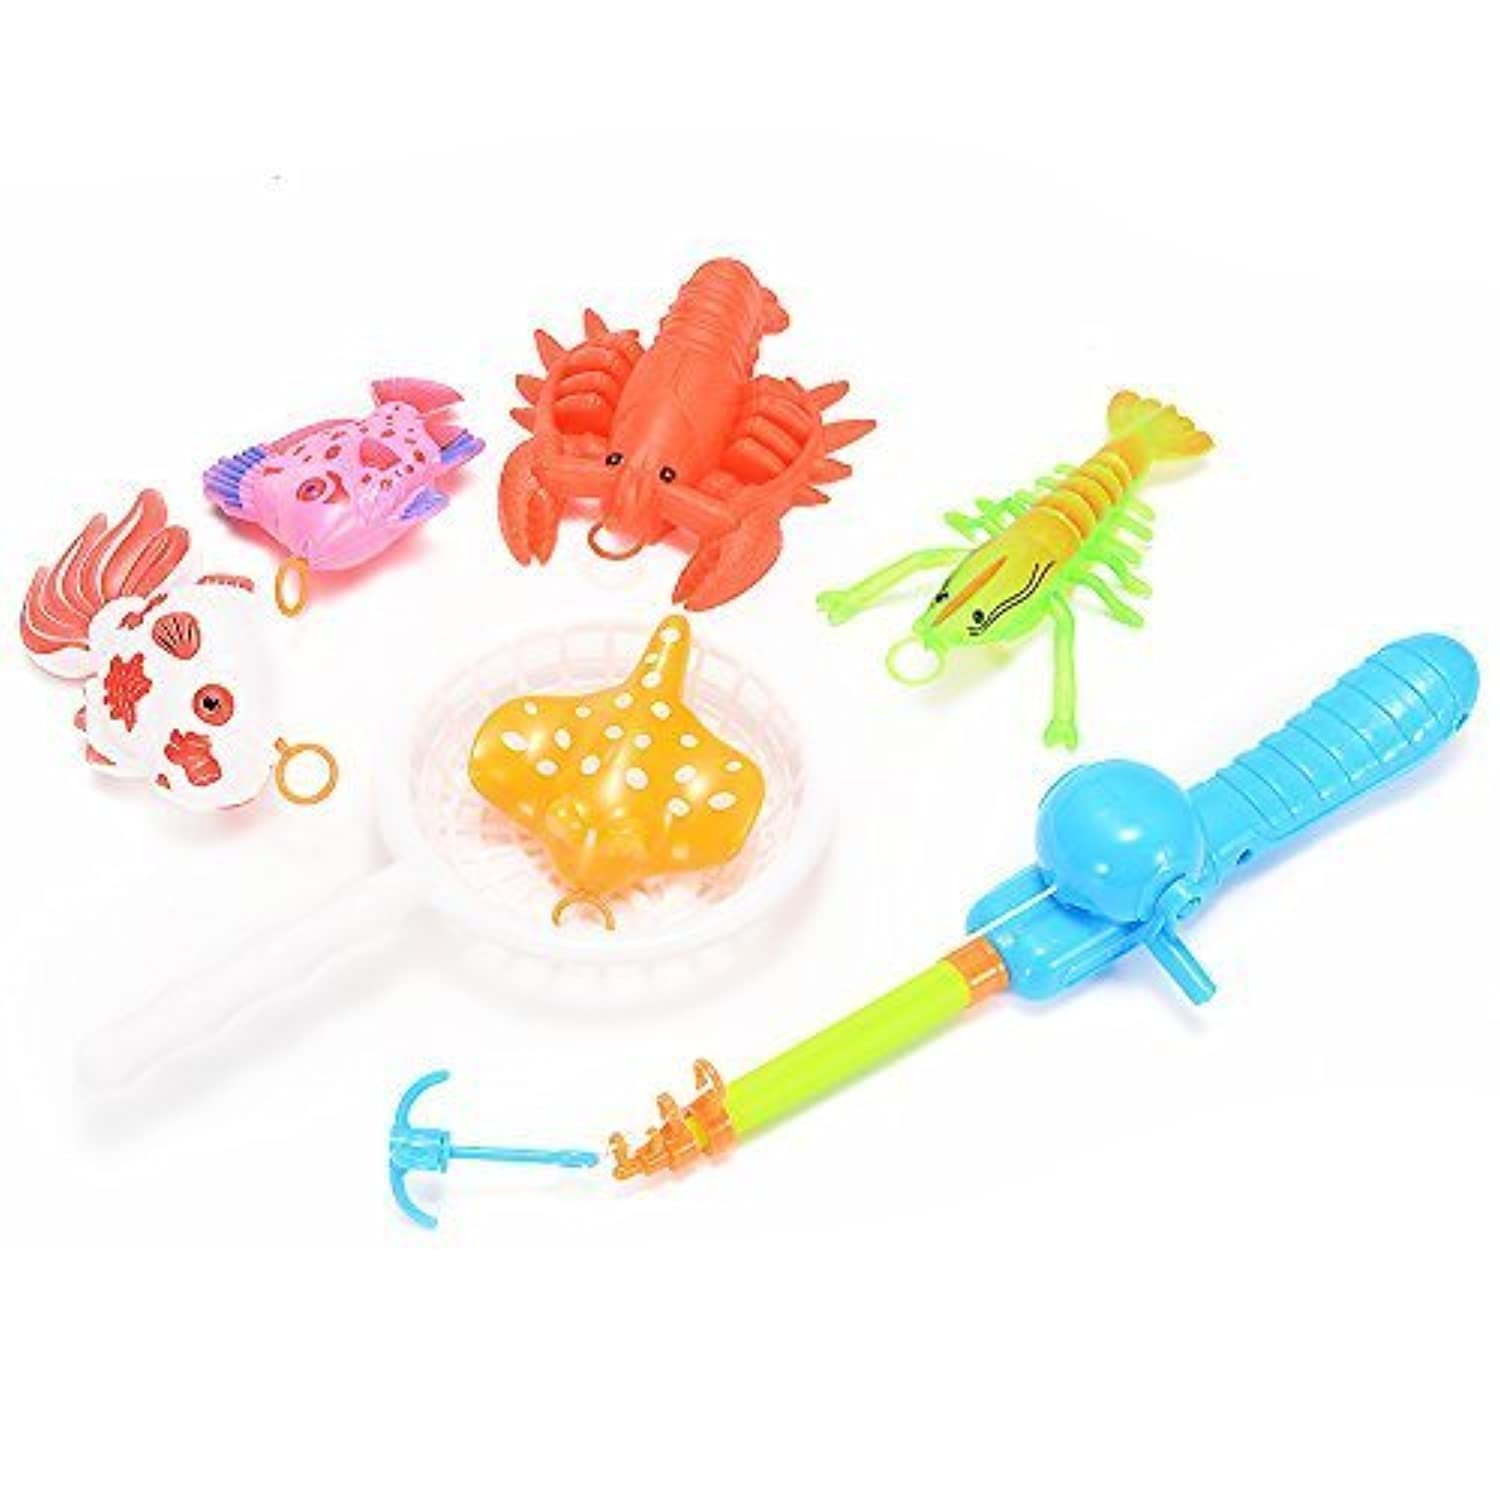 Emorefun Hook Fishing Toy Playset Various Fish and Crab Model Pretend Play Fun Bath Toy Basic Educational Development Table Game Birthday Gift Toy for KidsBaby Toddlers [並行輸入品]